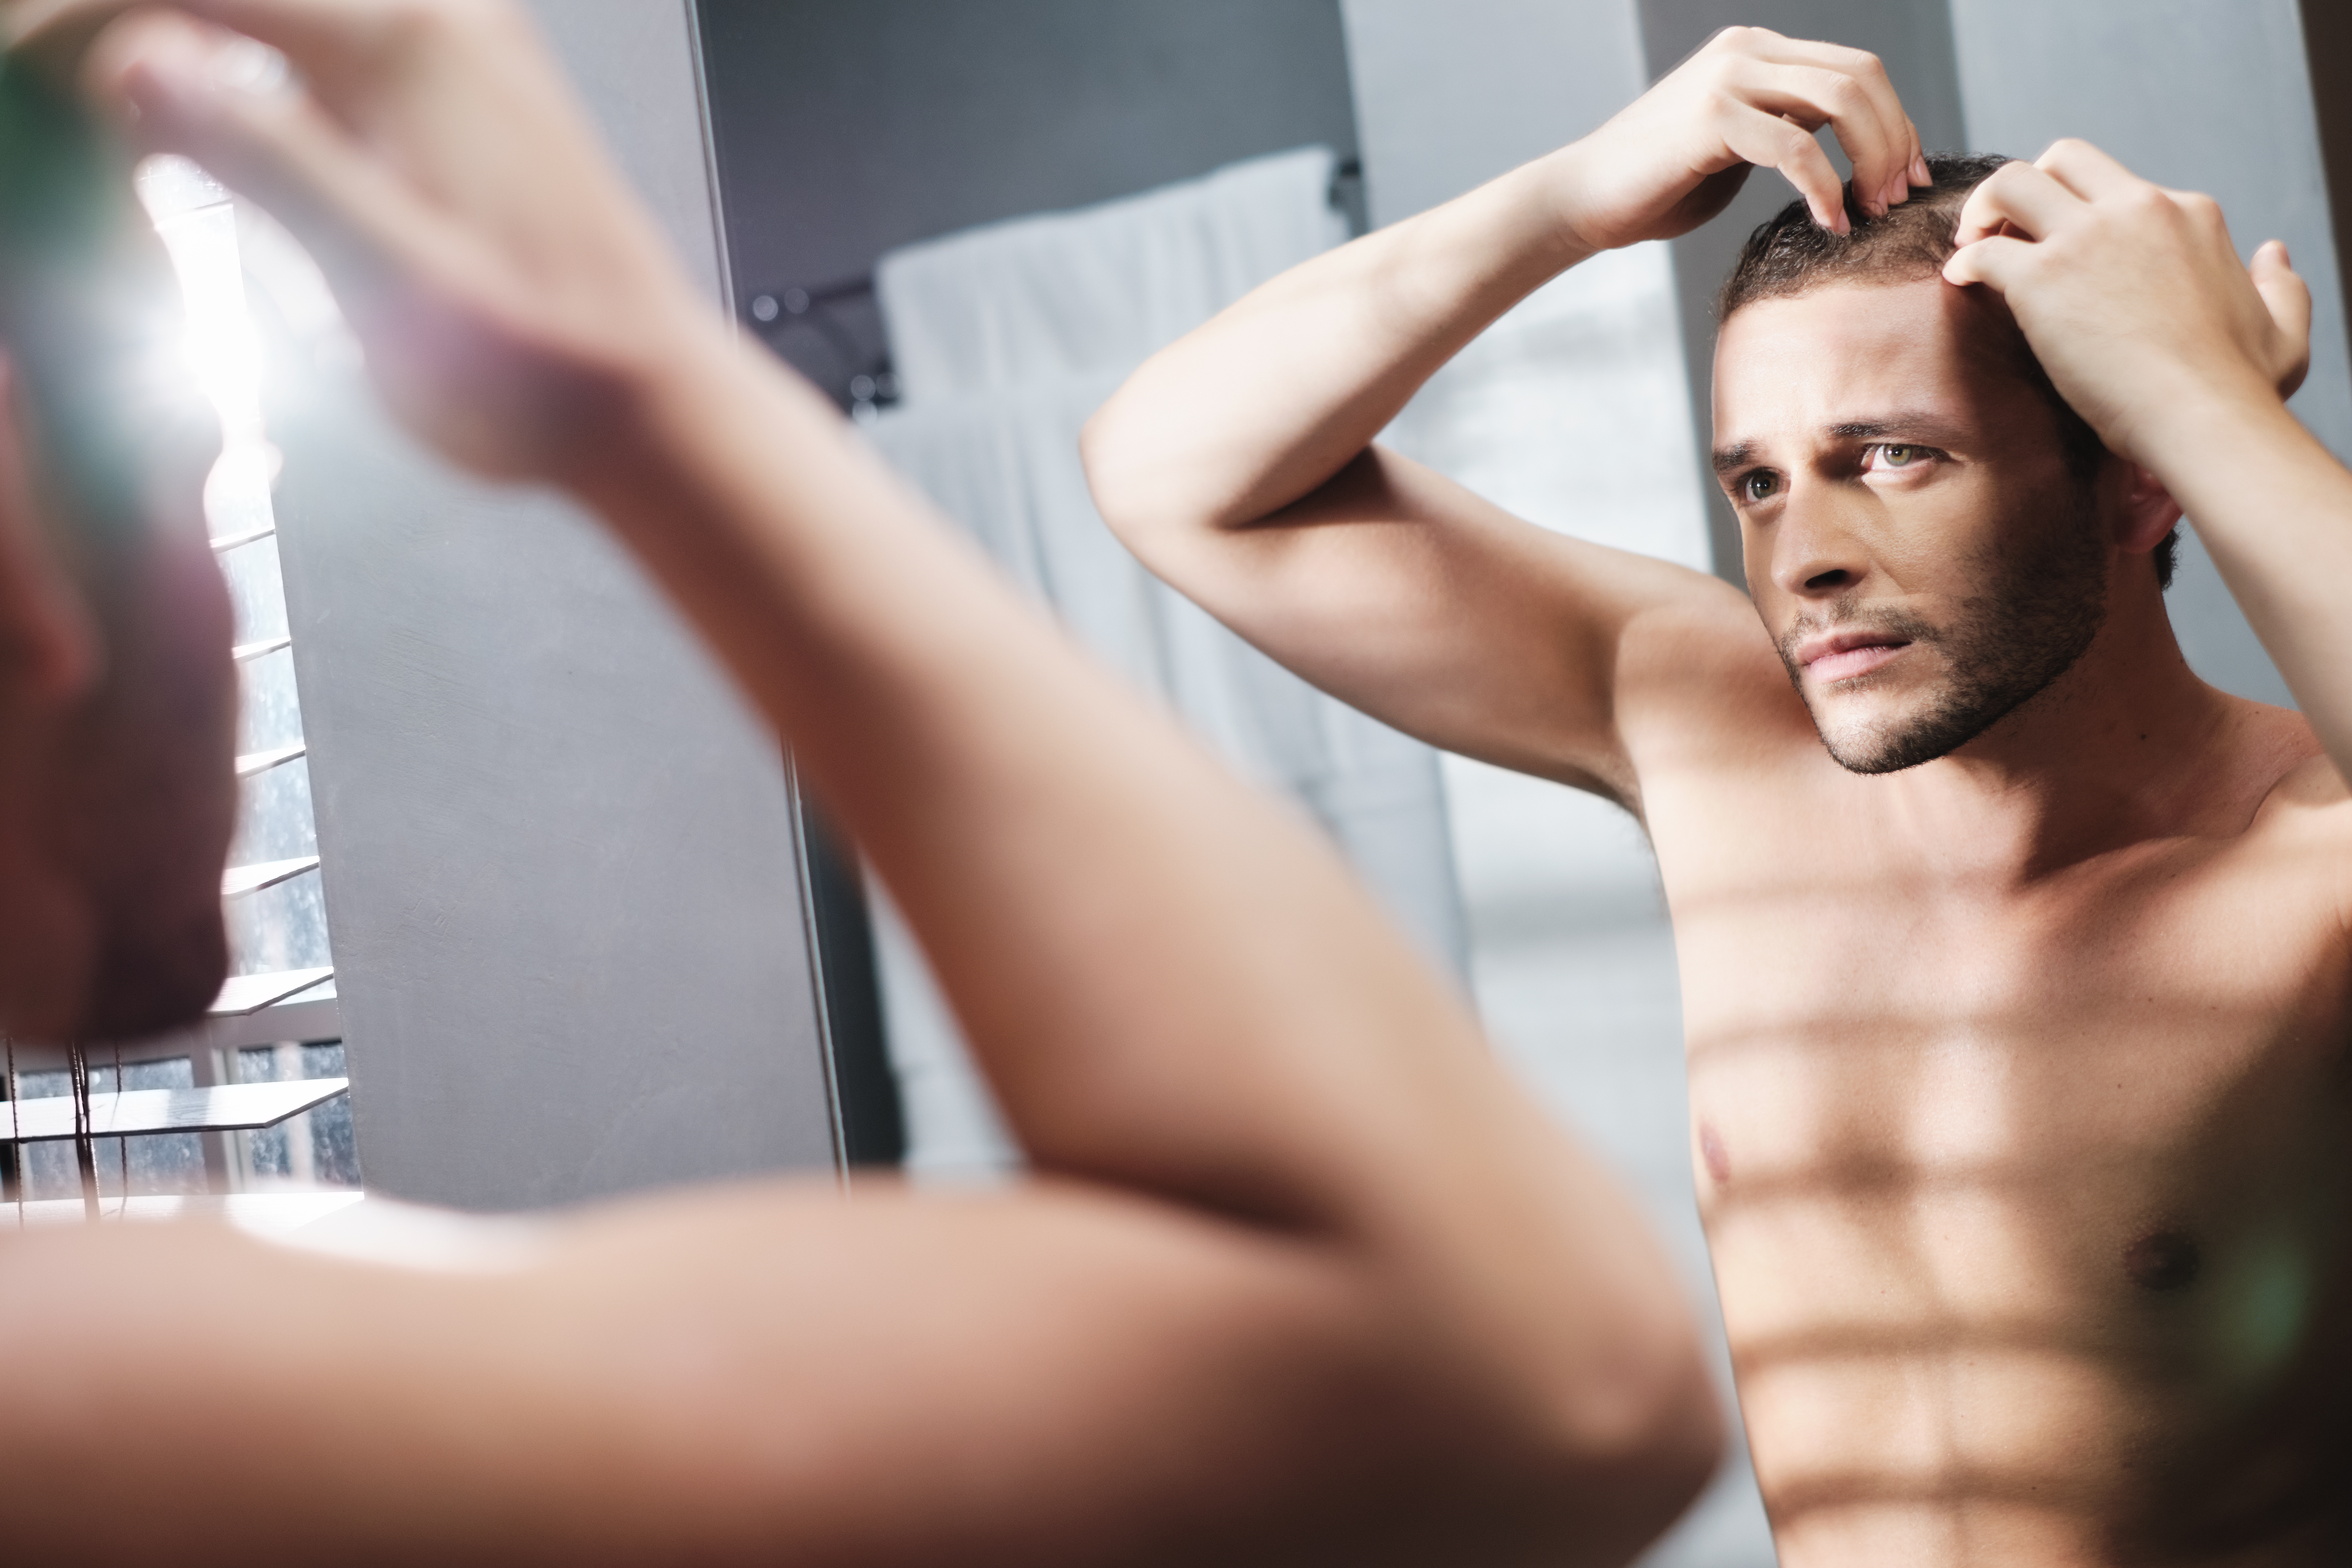 A Man stand in front of a mirror concerned about his hair loss